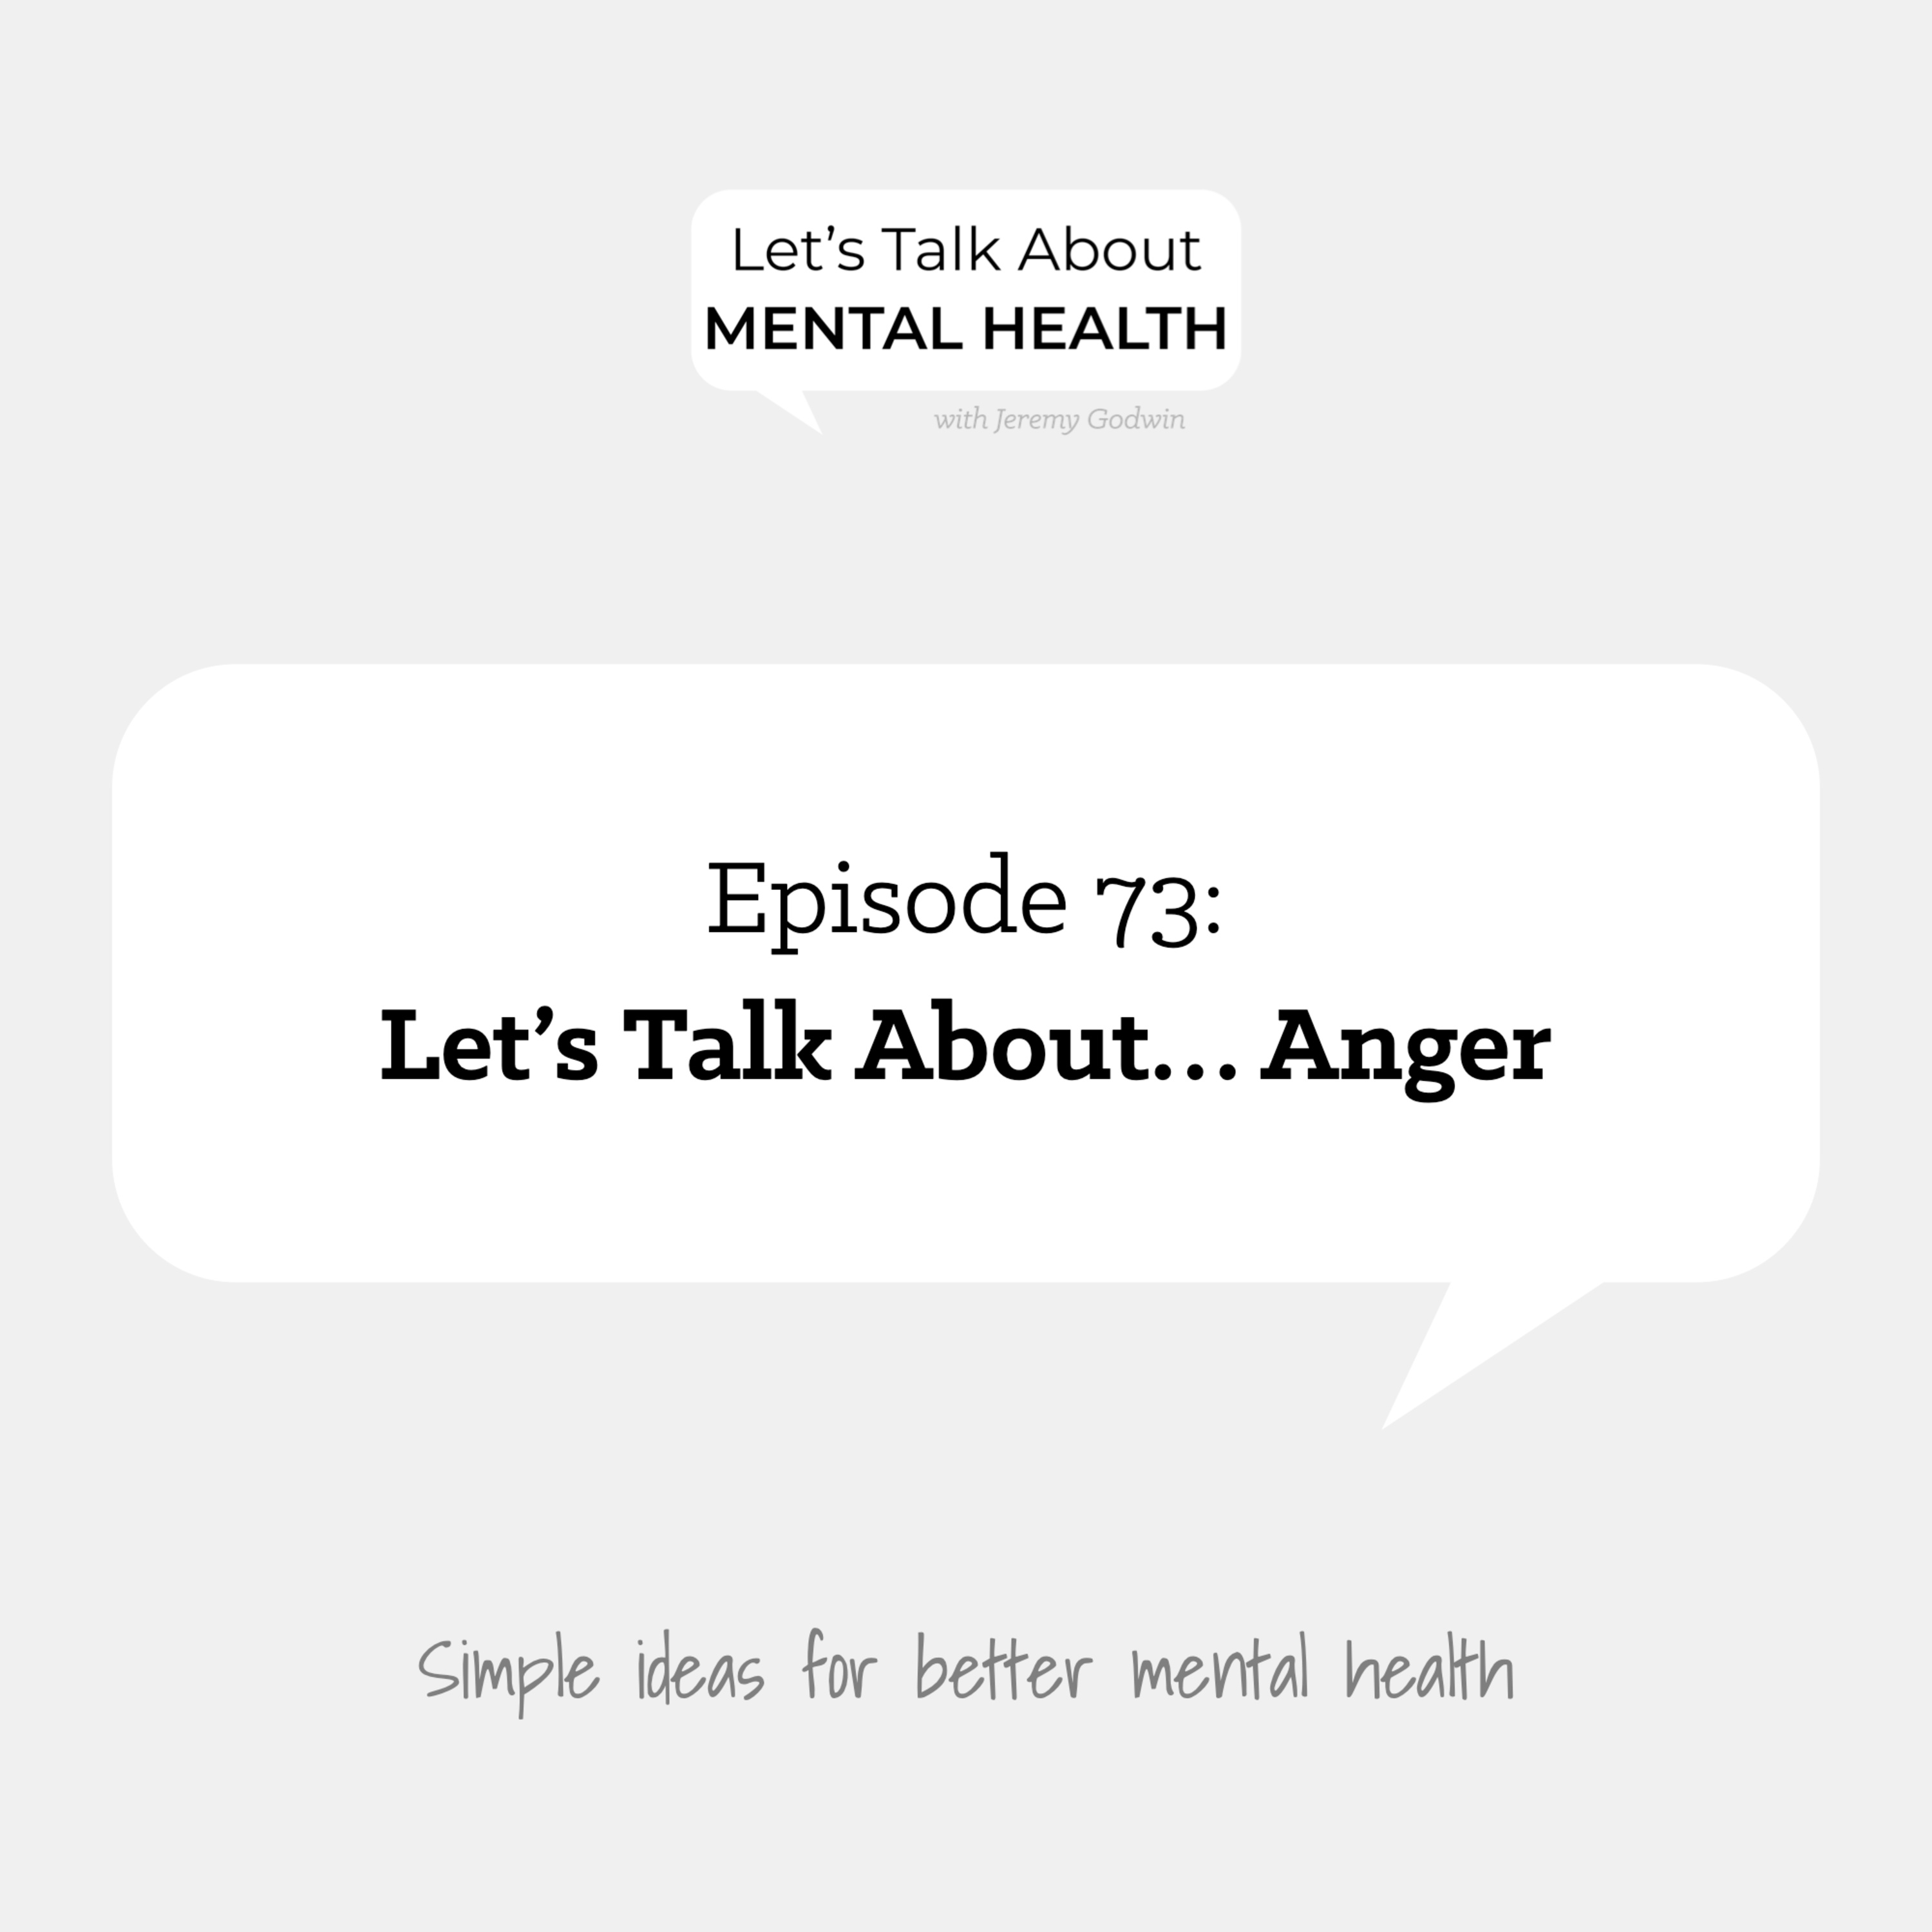 Let's Talk About... Anger